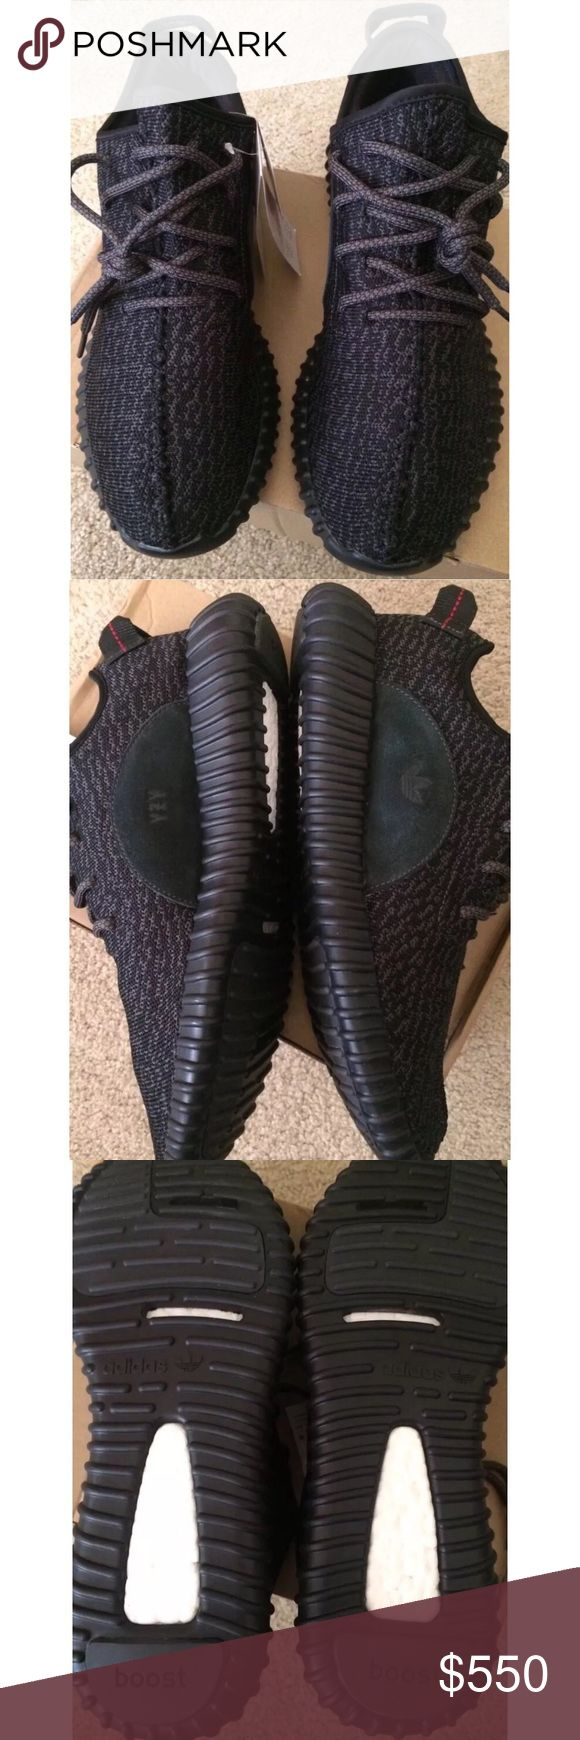 Yeezy Boost 350 Pirate Black Men's 7 Women's 9 Yeezy Boost 350 Pirate Black Men's 7 Women's 9! Great price! These retail at $1500! Yeezy Shoes Sneakers